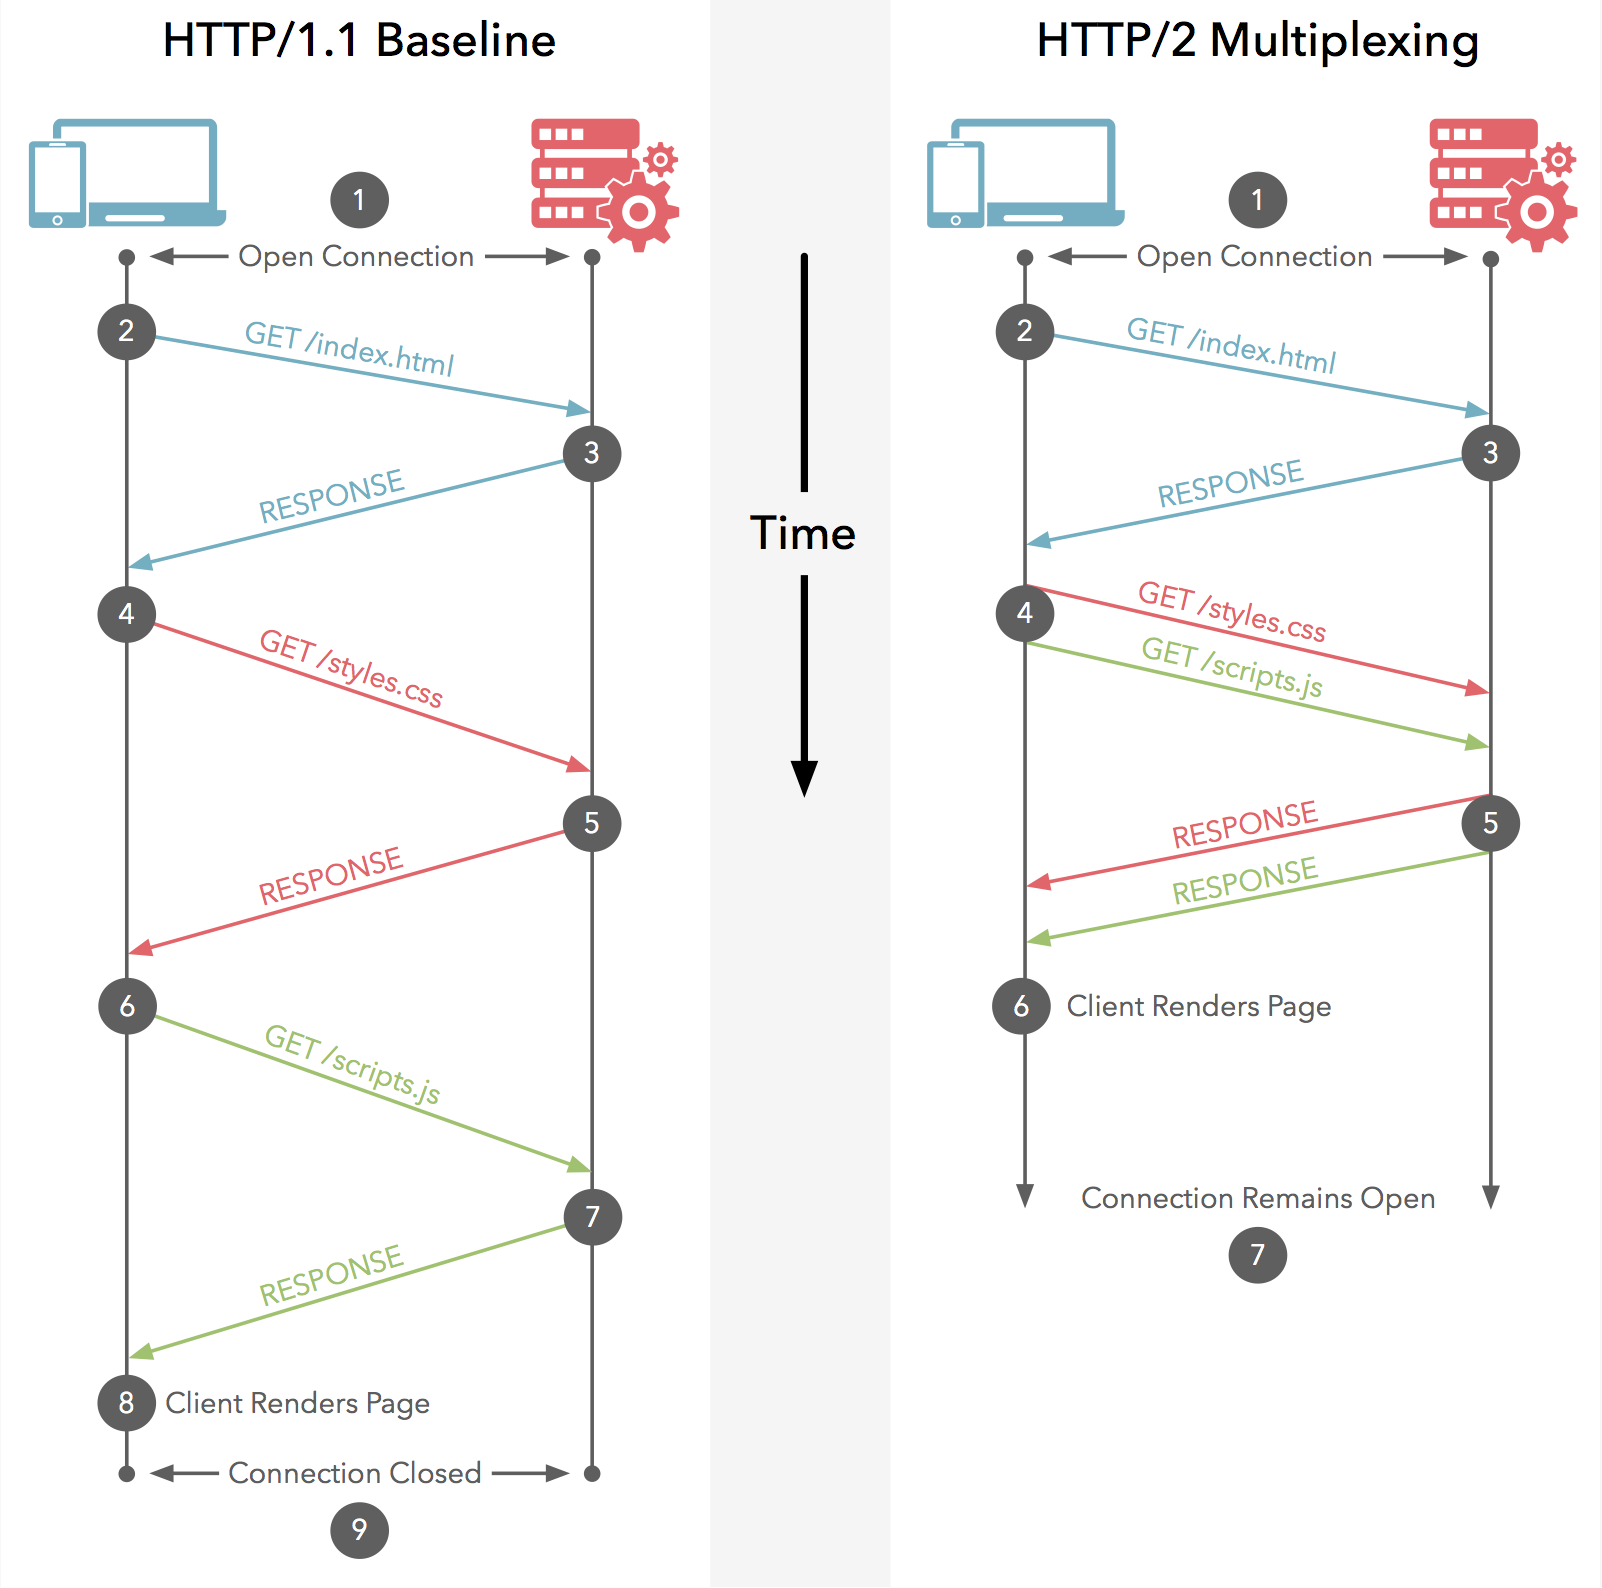 HTTP/1 compared to HTTP/2